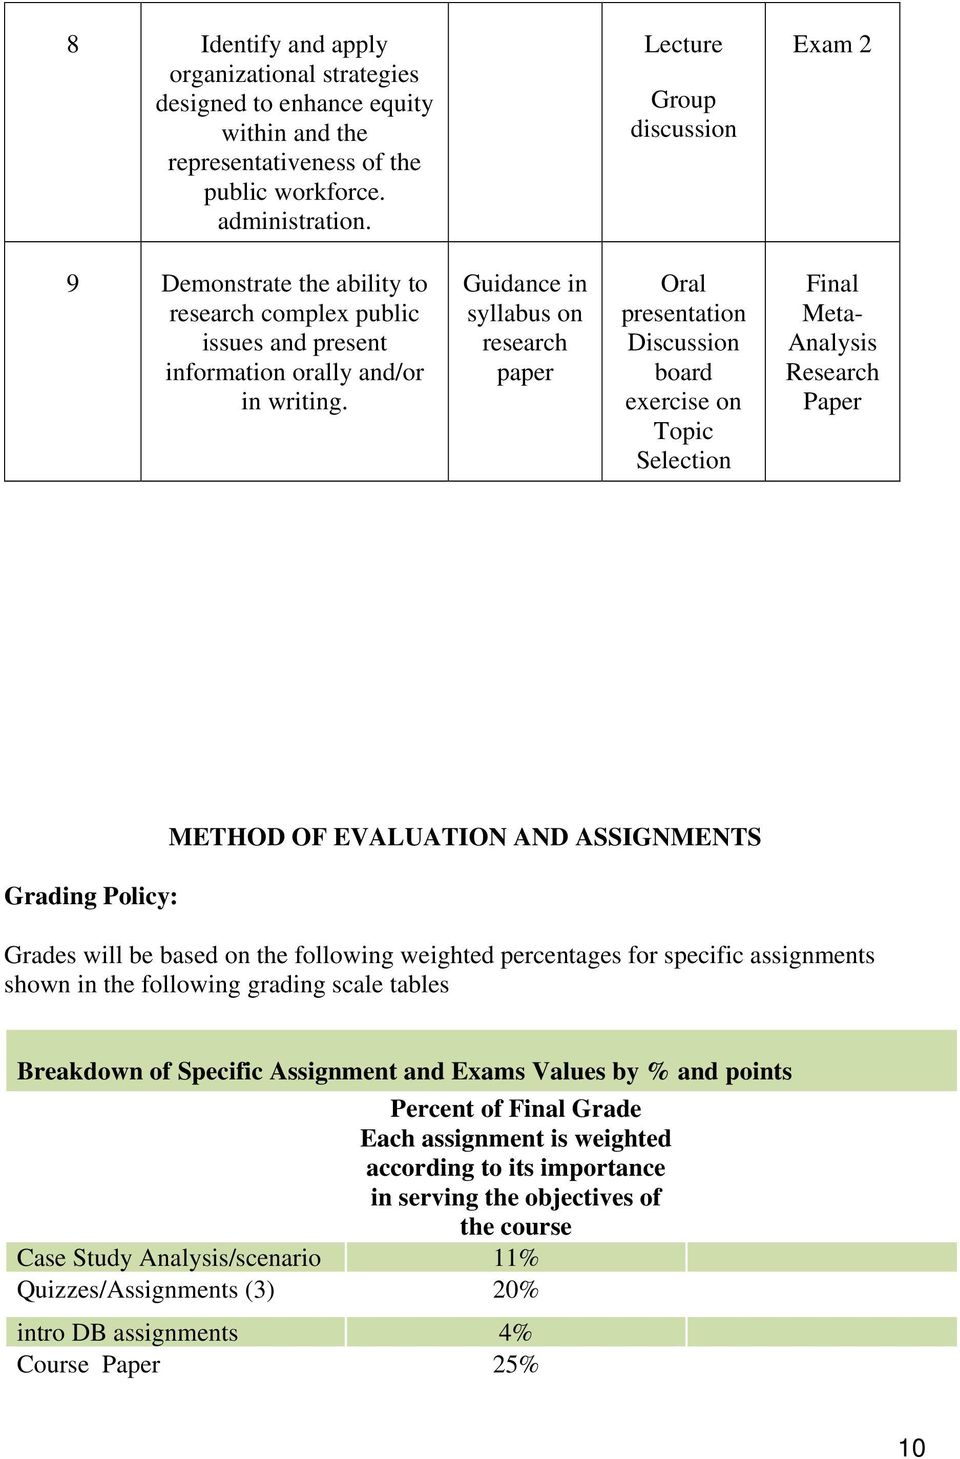 Guidance in syllabus on research paper Oral presentation Discussion board exercise on Topic Selection Final Meta- Analysis Research Paper Grading Policy: METHOD OF EVALUATION AND ASSIGNMENTS Grades